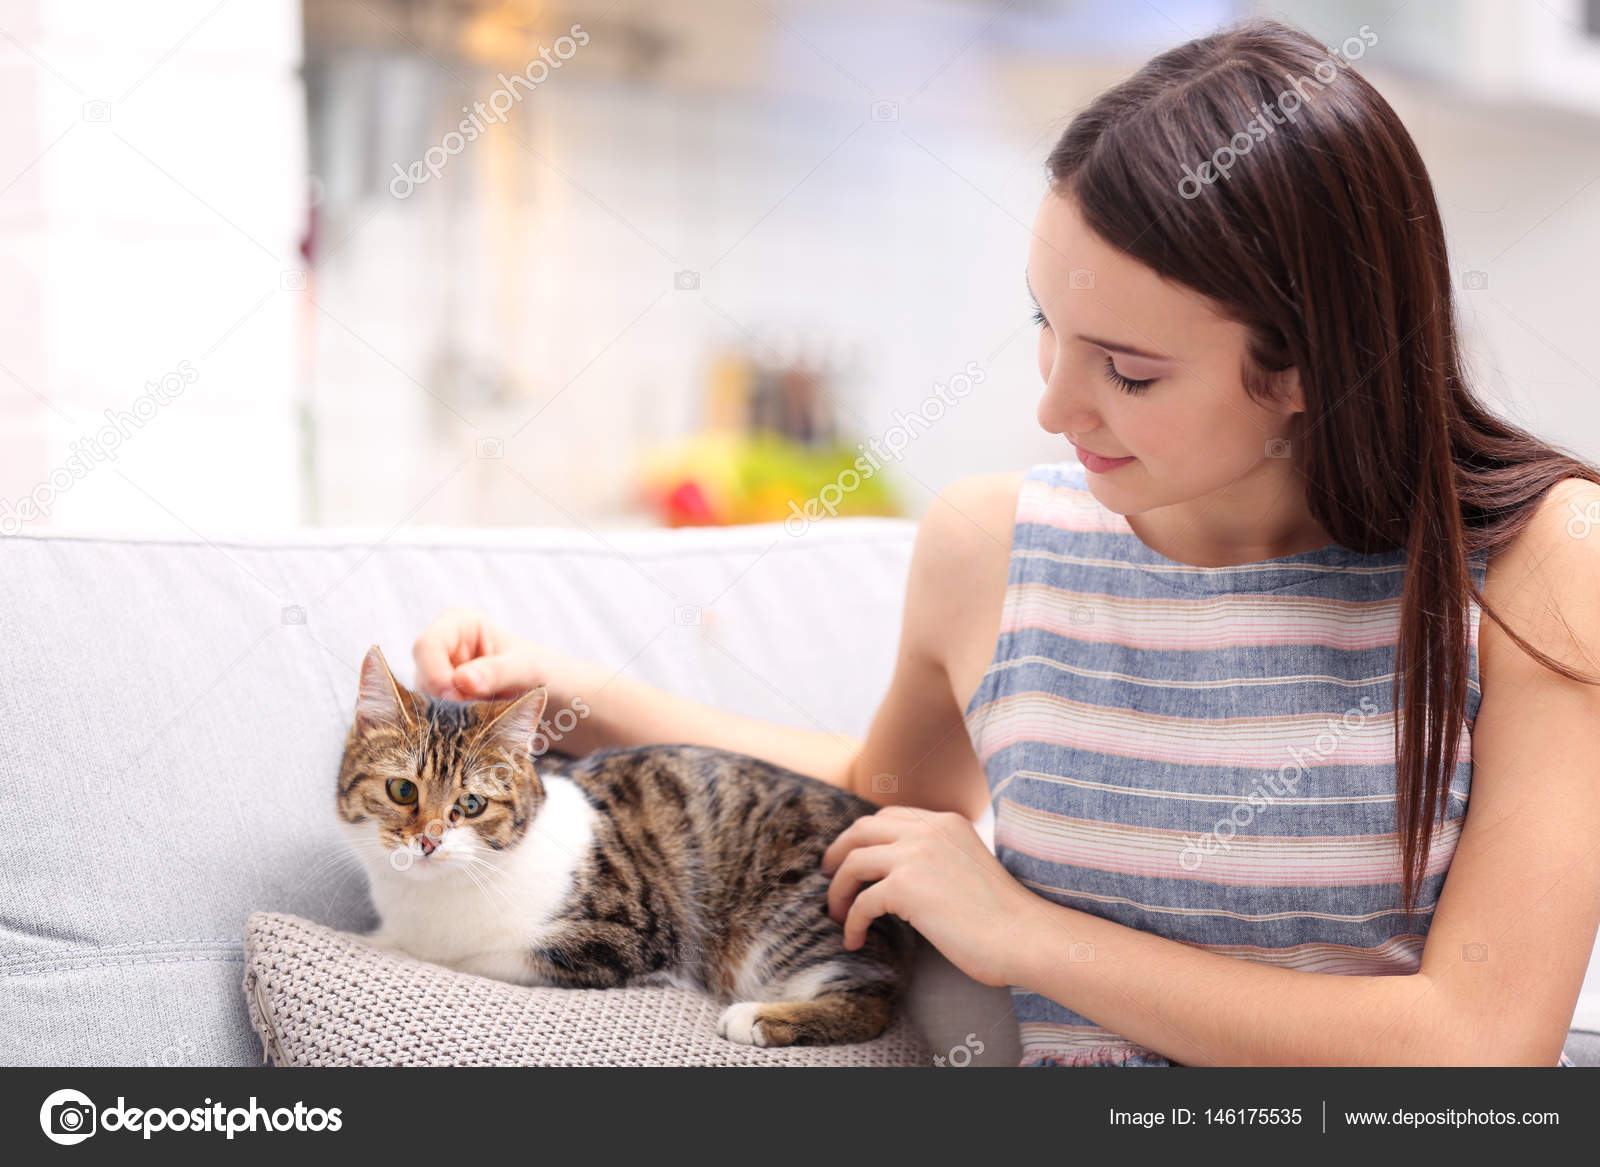 Beautiful Young Woman With Cute Cat At Home Stock Photo C Belchonock 146175535